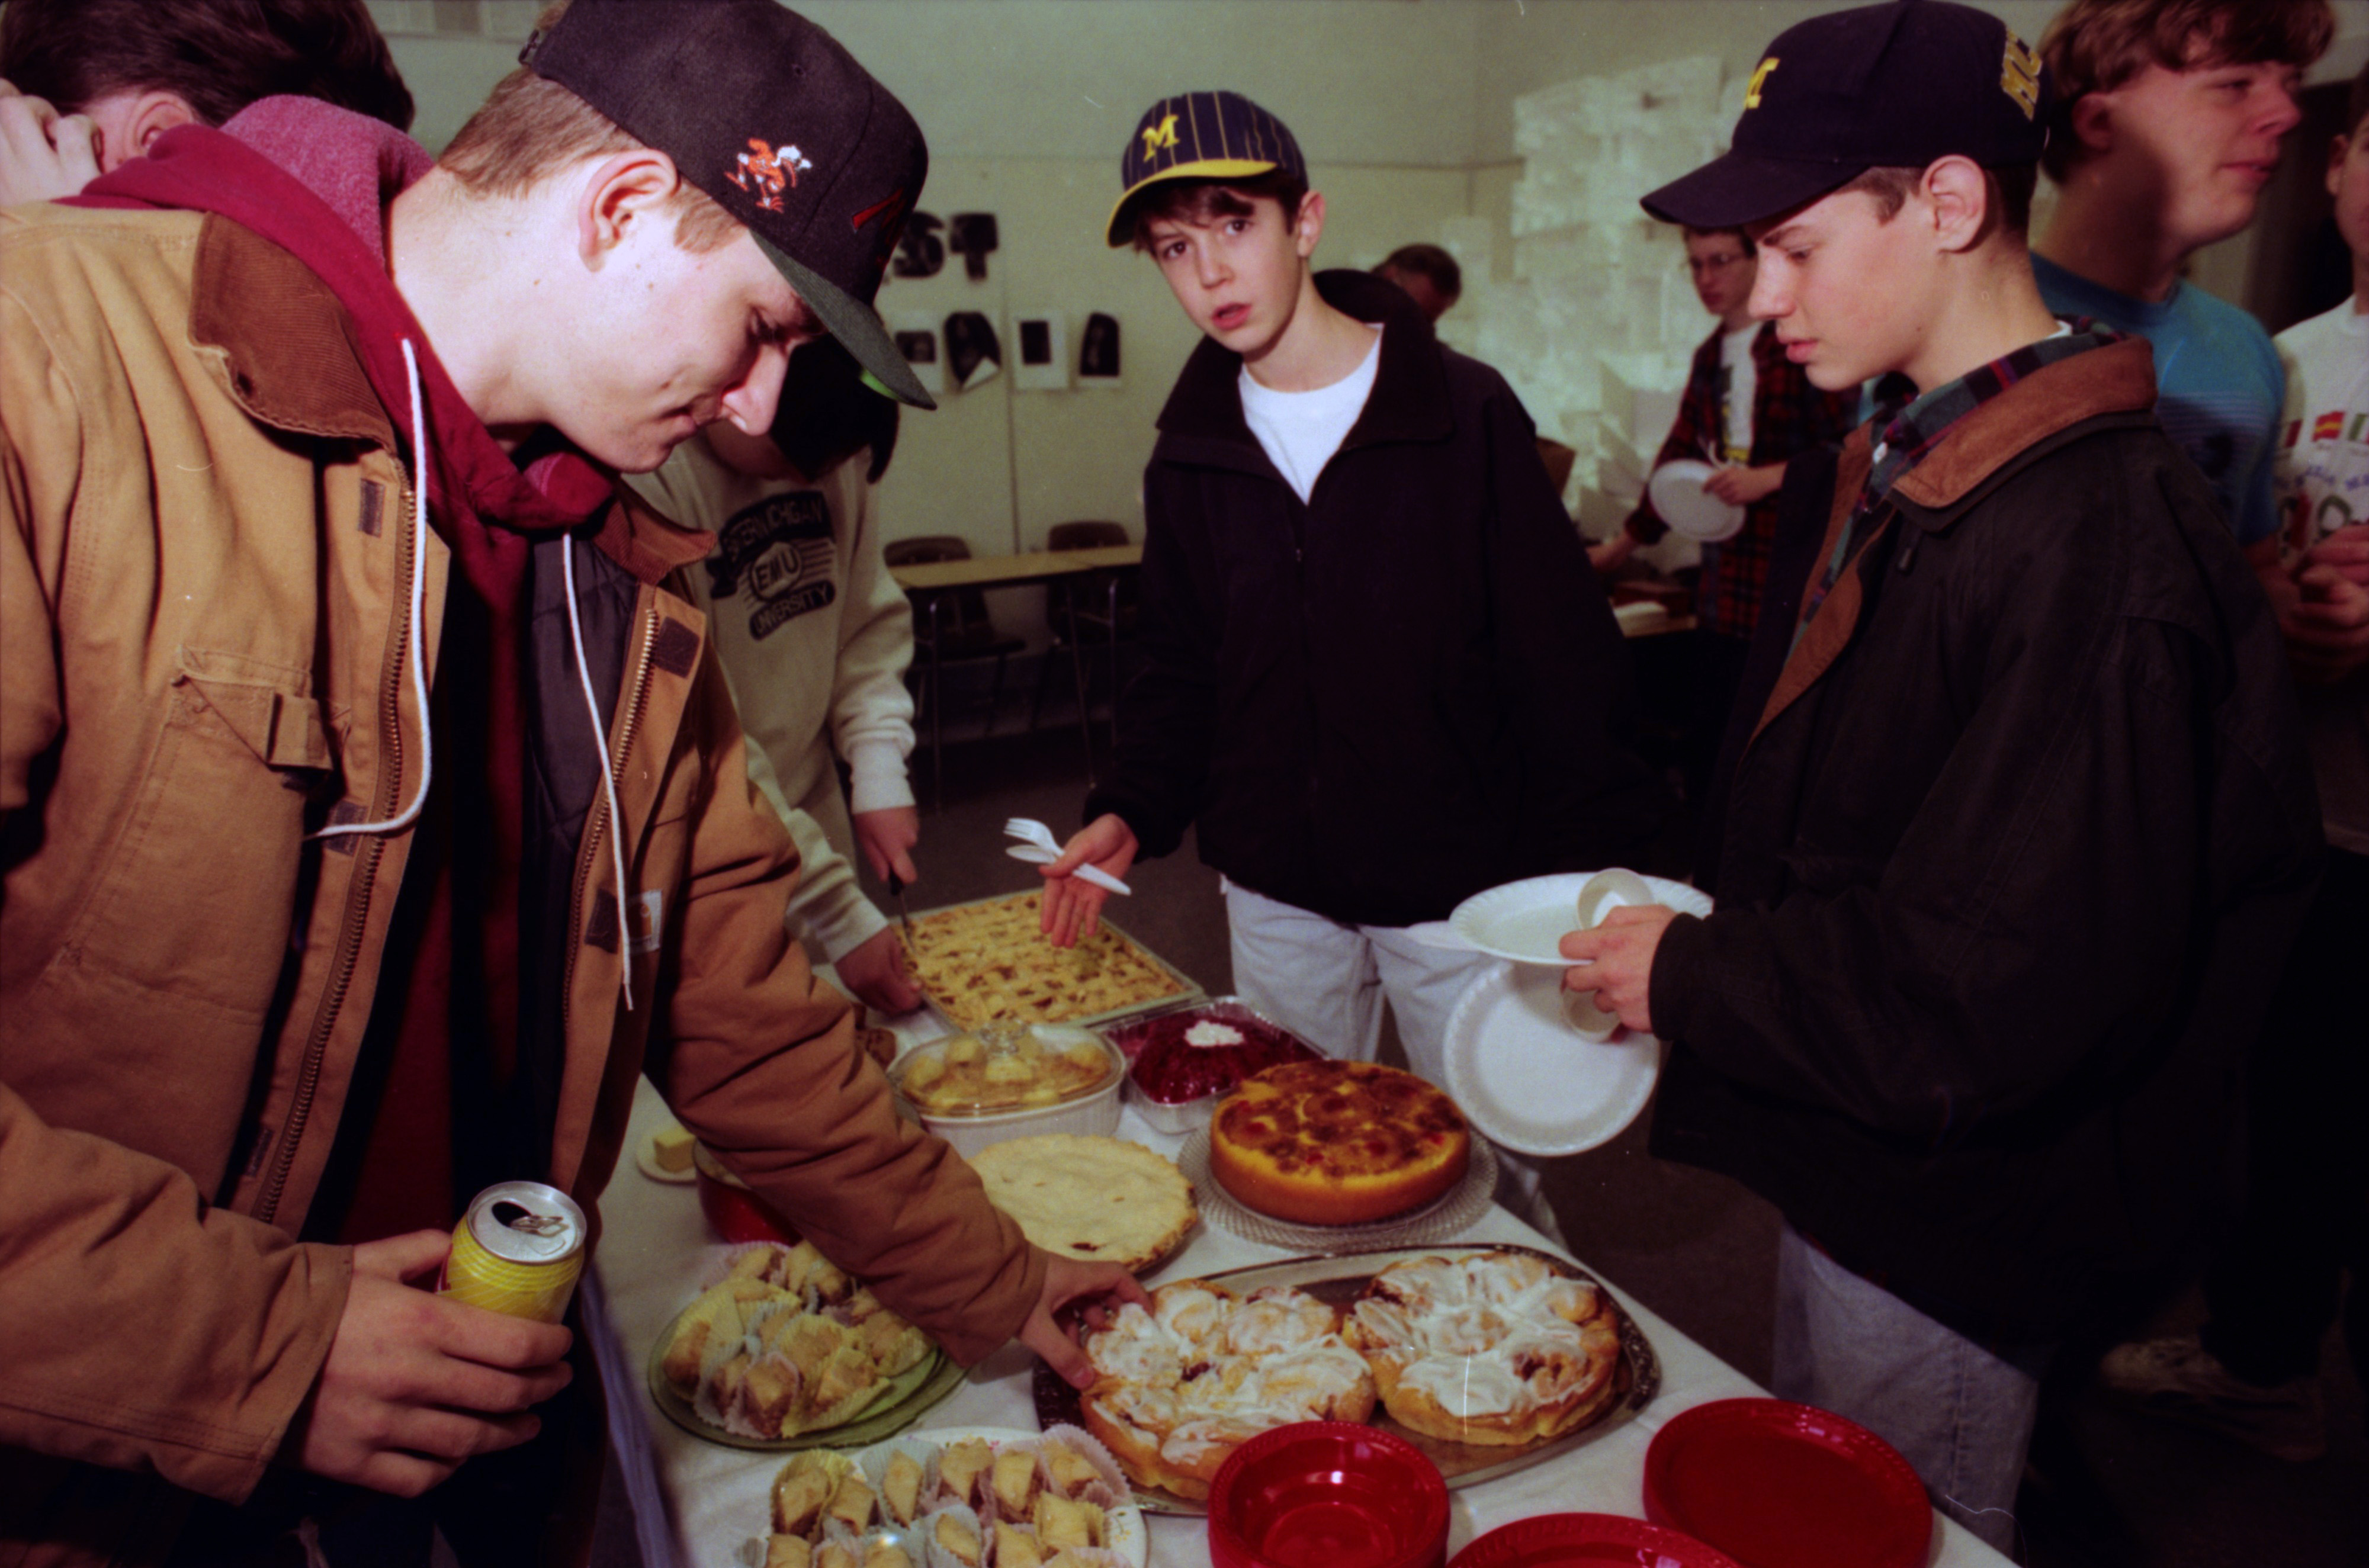 Students Enjoy Food at Community High School's Multi-Ethnic Festival, November 1992 image